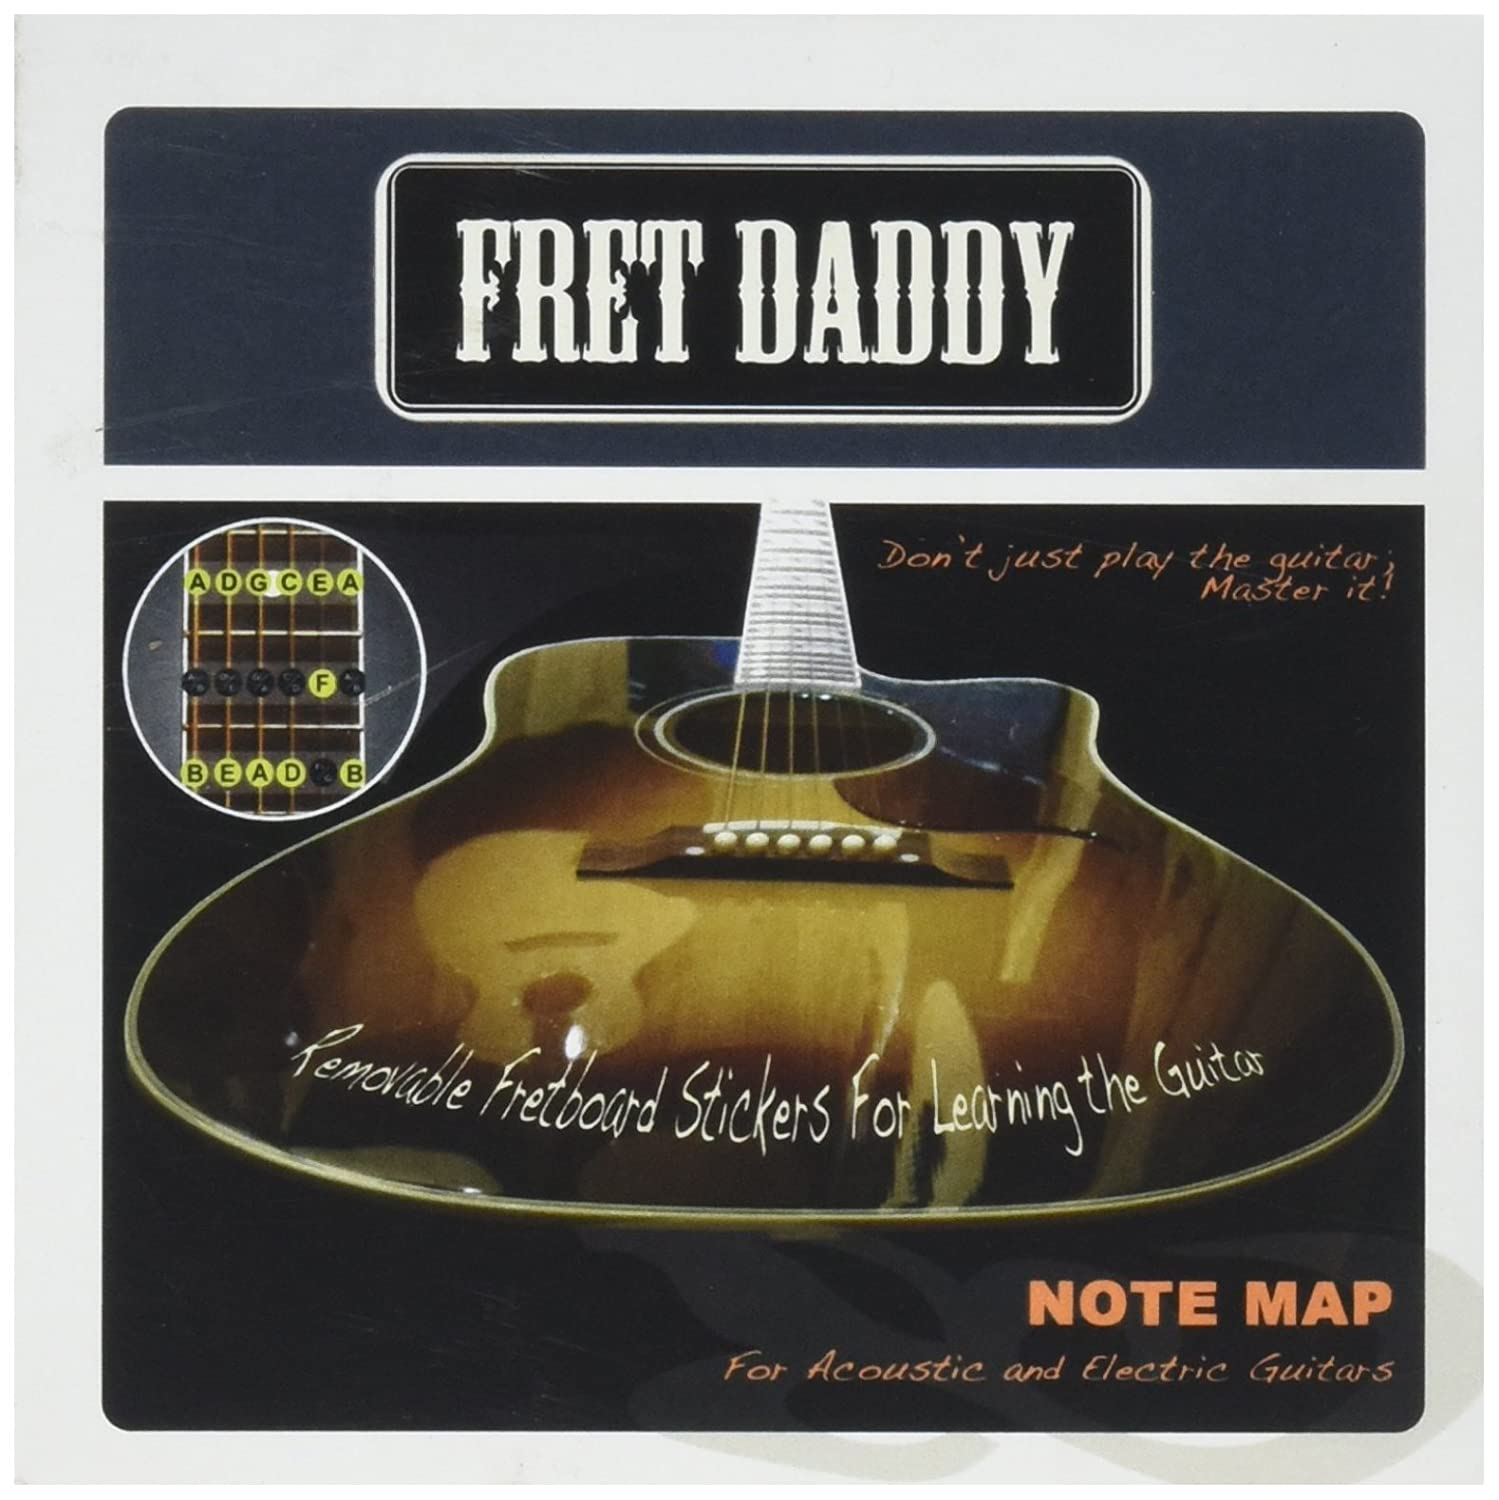 Fret Daddy The Fretboard Note Map for Electric/Acoustic Guitar EANM-00001